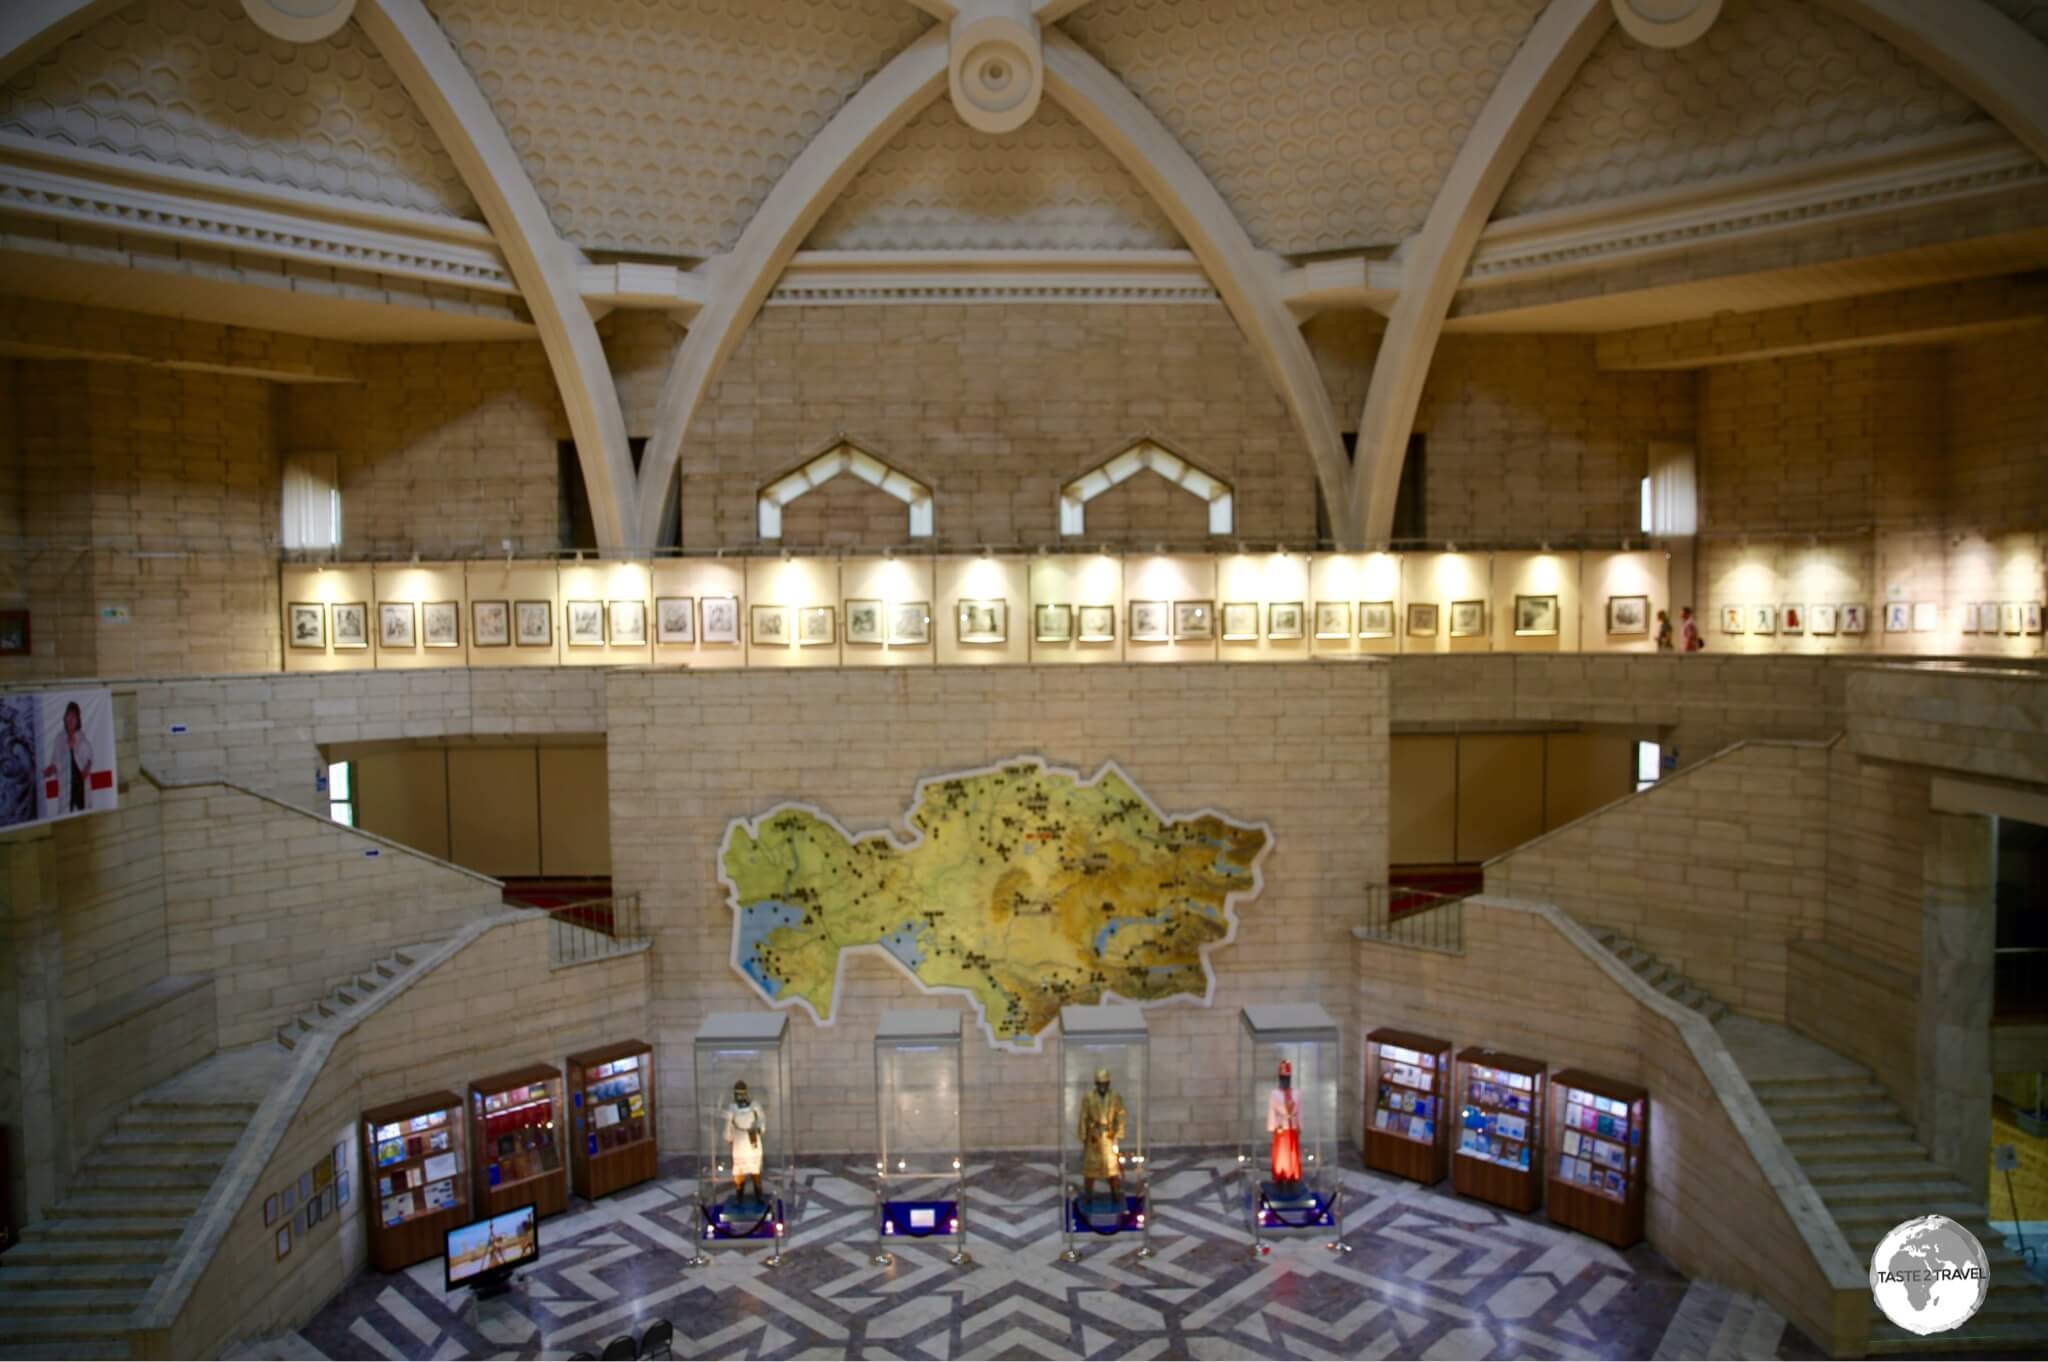 The lofty lobby of the Central State Museum of Kazakhstan.